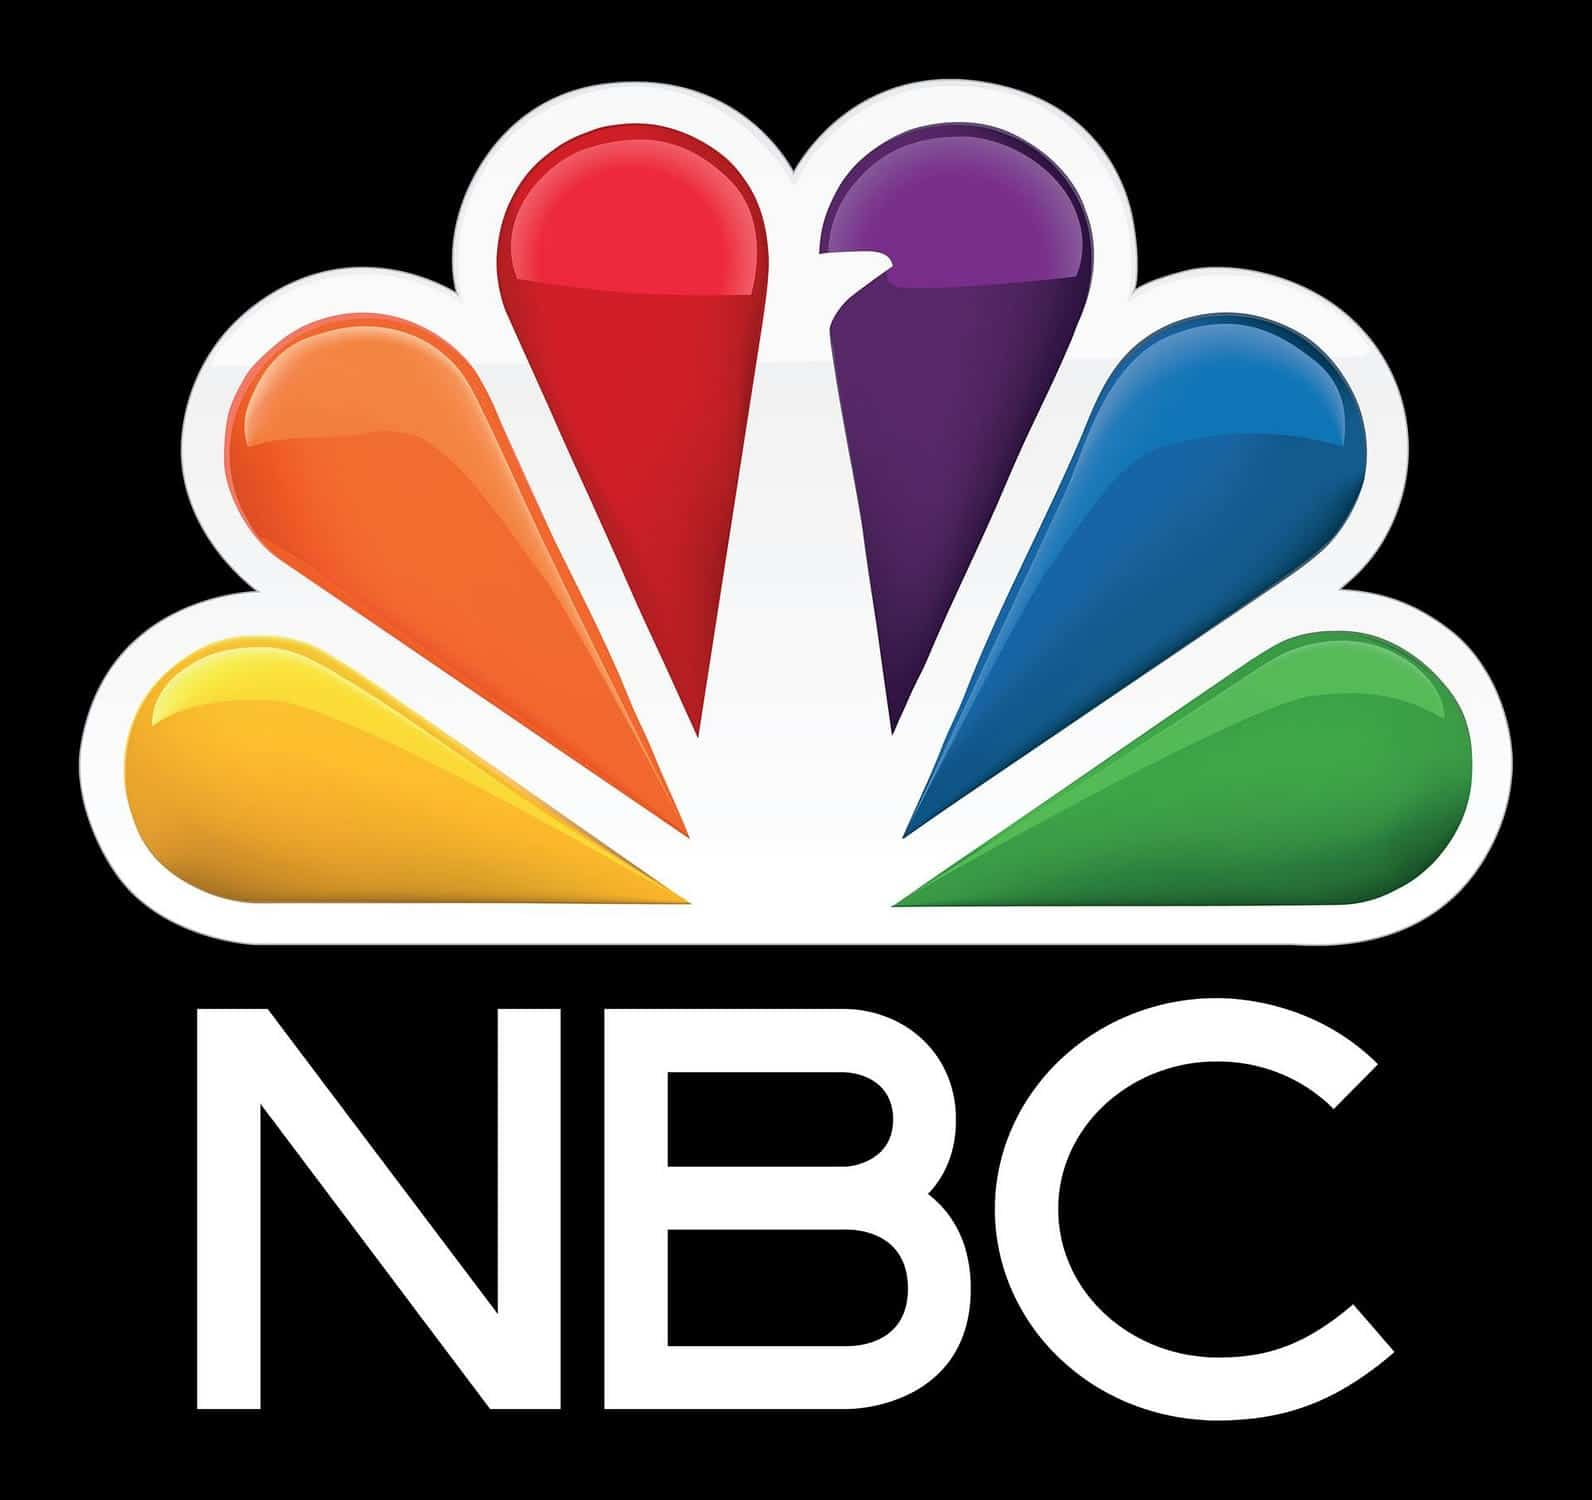 nbc-logo-black-o